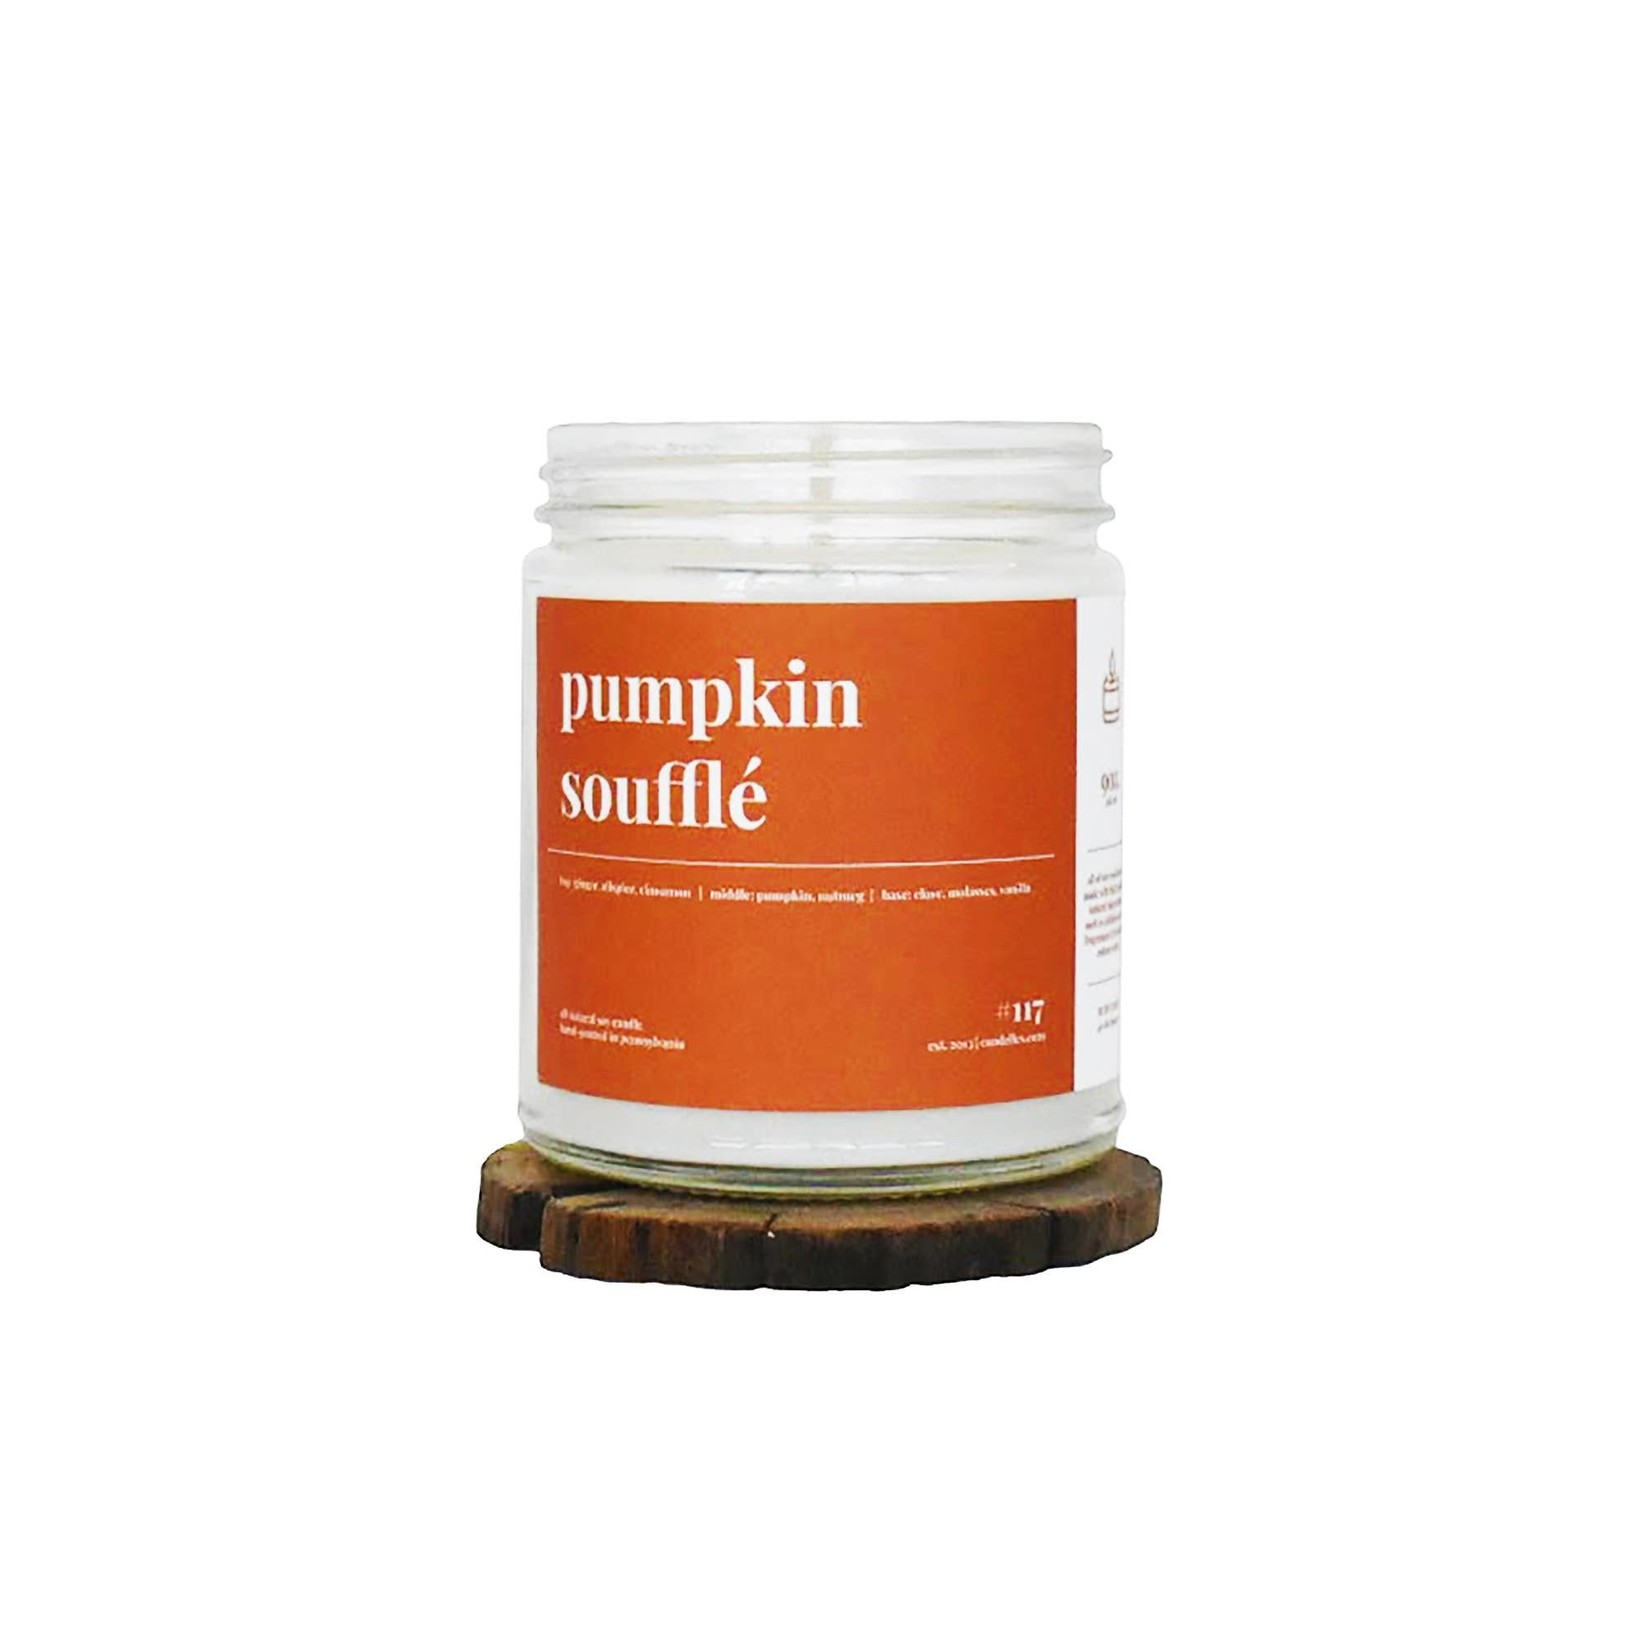 Candelles Soy Candles Scented Soy Candle 9 oz - Pumpkin Souffle